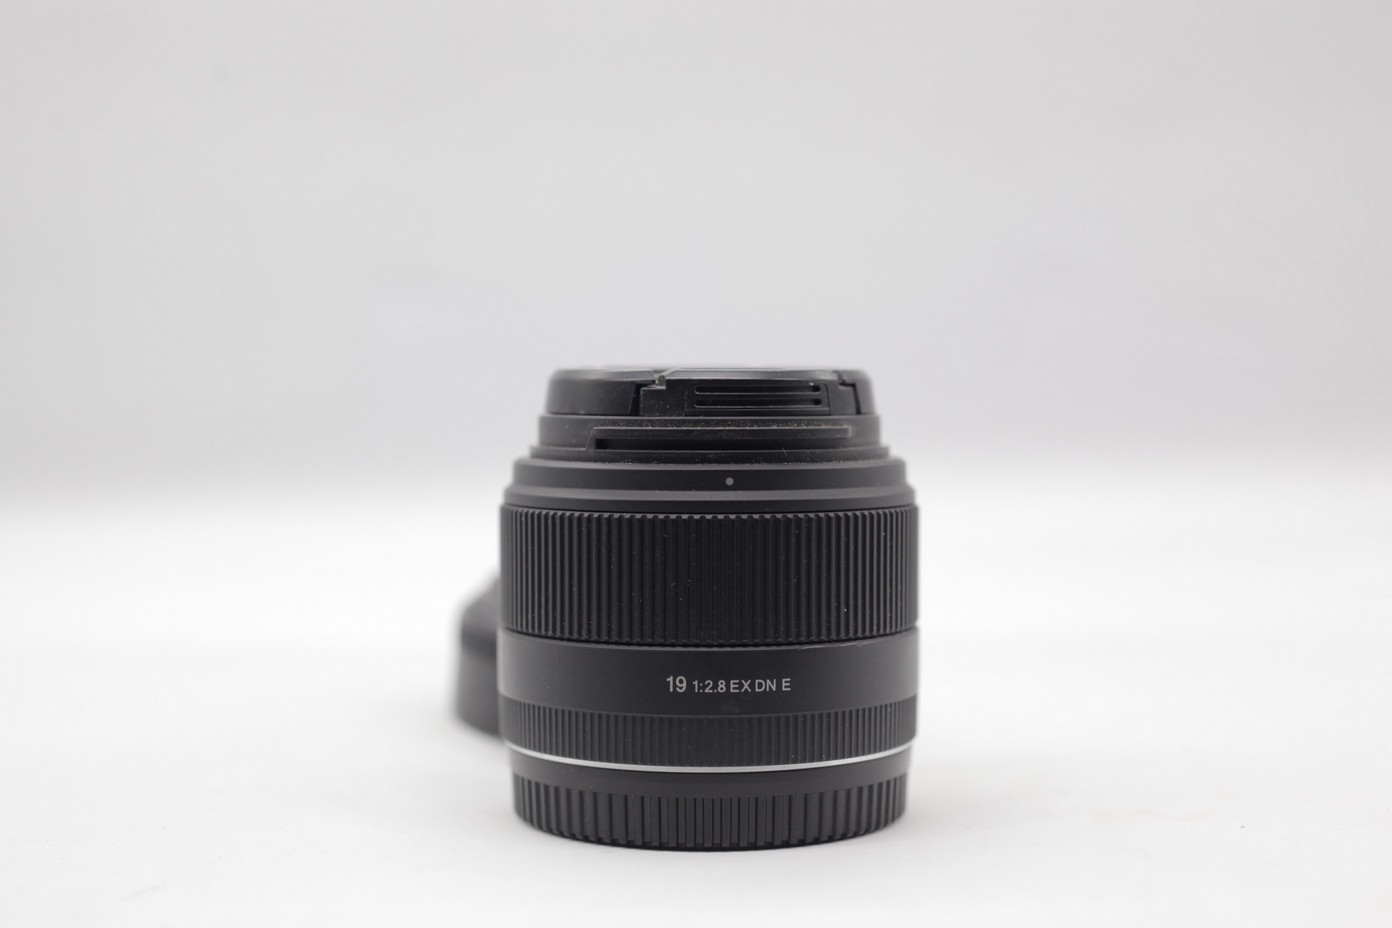 Used - Sigma 19mm F2.8 EX DN (Sony E mount)